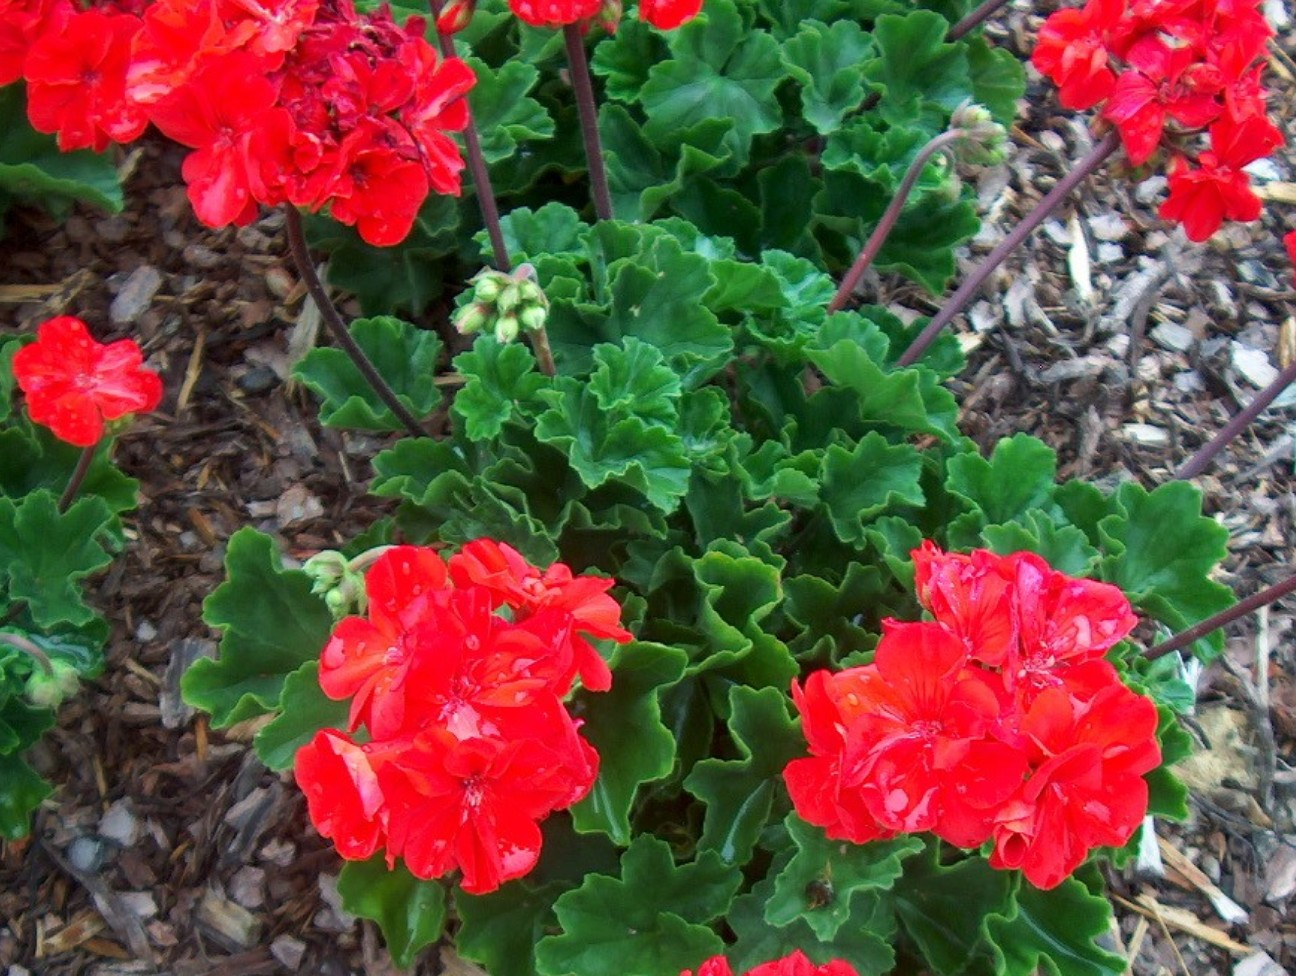 Pelargonium hortorum ''Fantasia Flame Improved' / Pelargonium hortorum ''Fantasia Flame Improved'